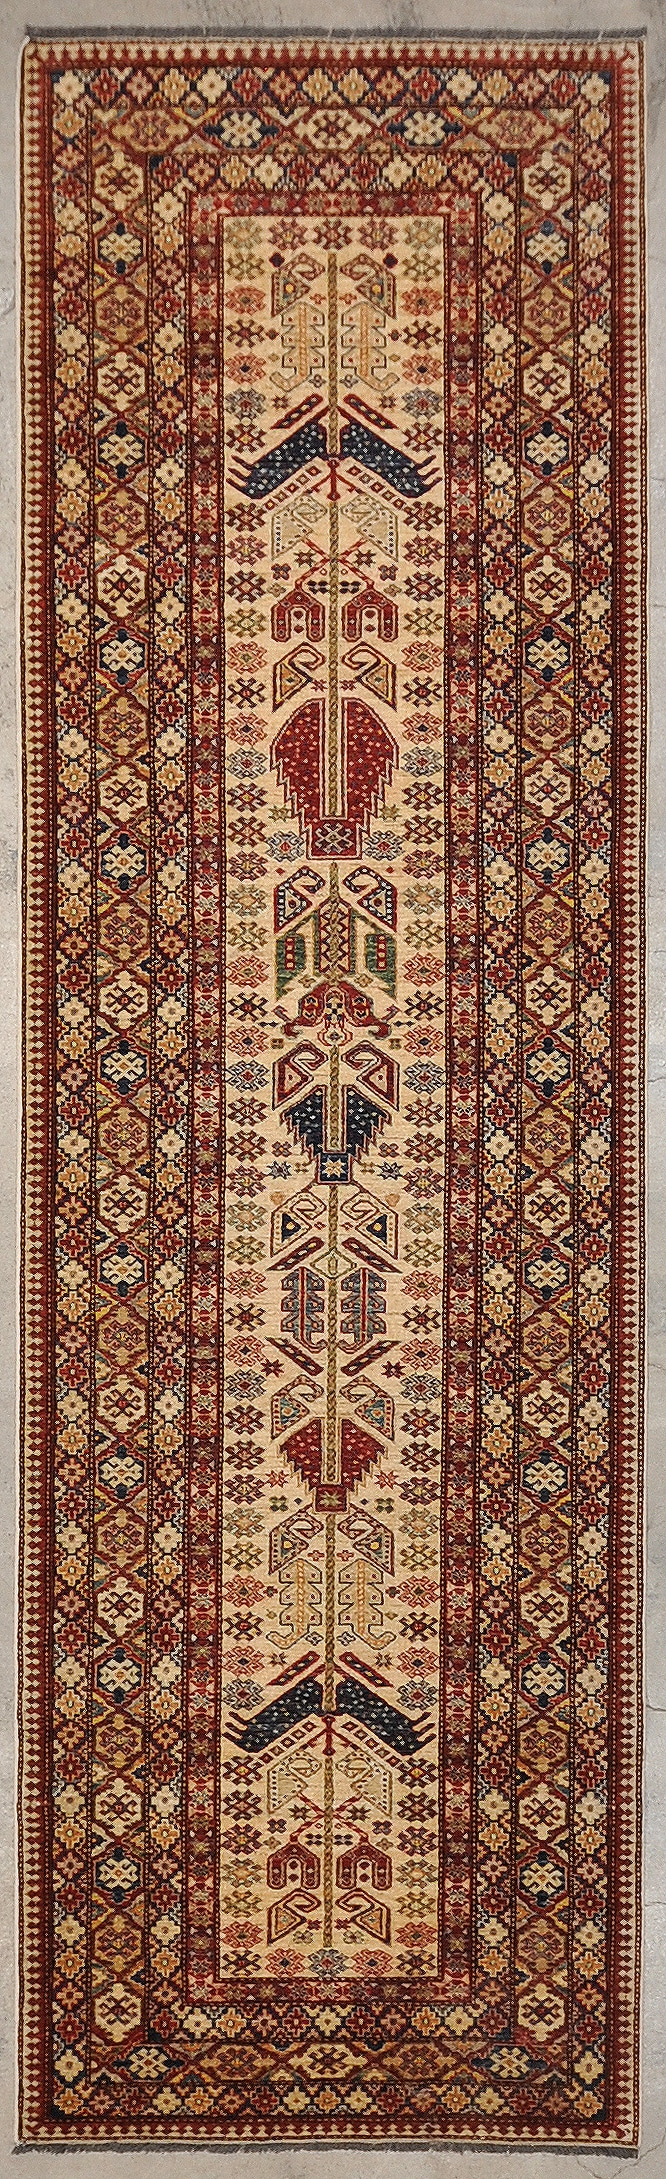 Fine Ziegler Caucasian Runner rugs and more oriental carpet 44022-